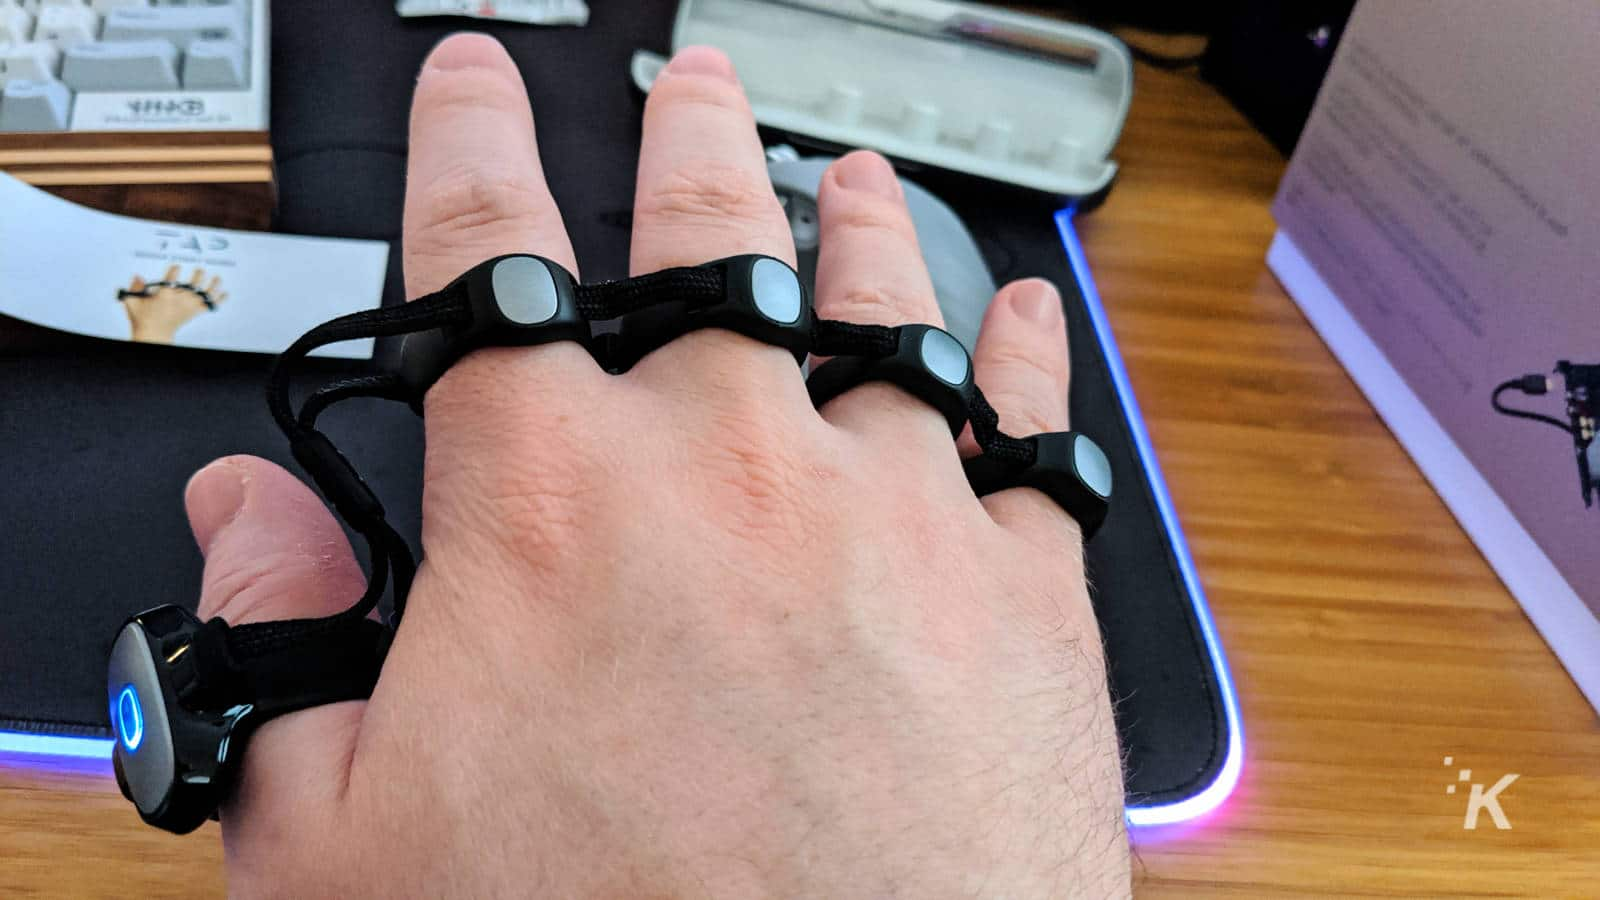 tap strap 2 bluetooth typing device